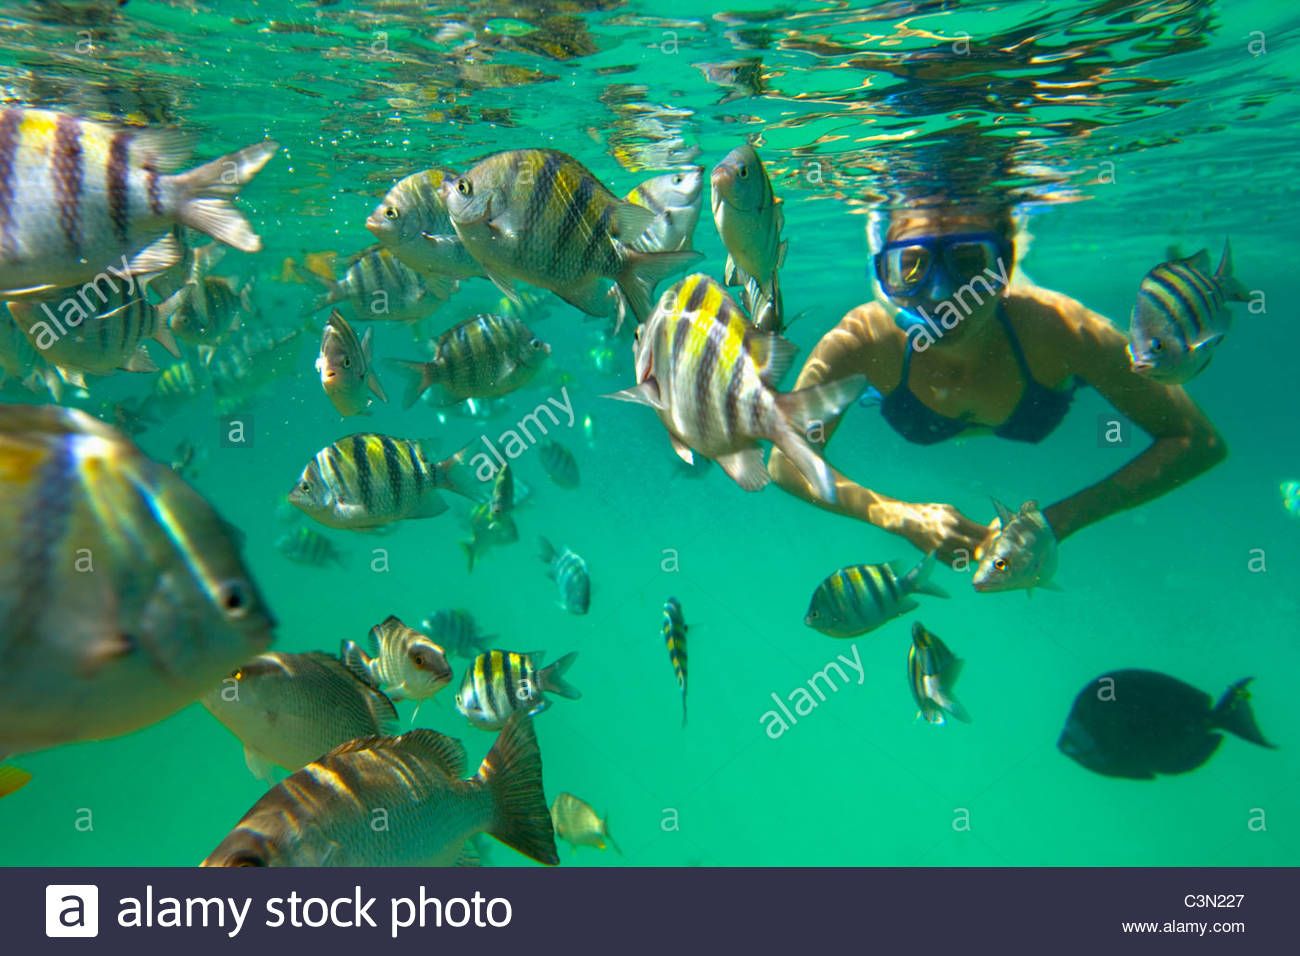 mexico quintana roo xel ha nature park tourist snorkeling and